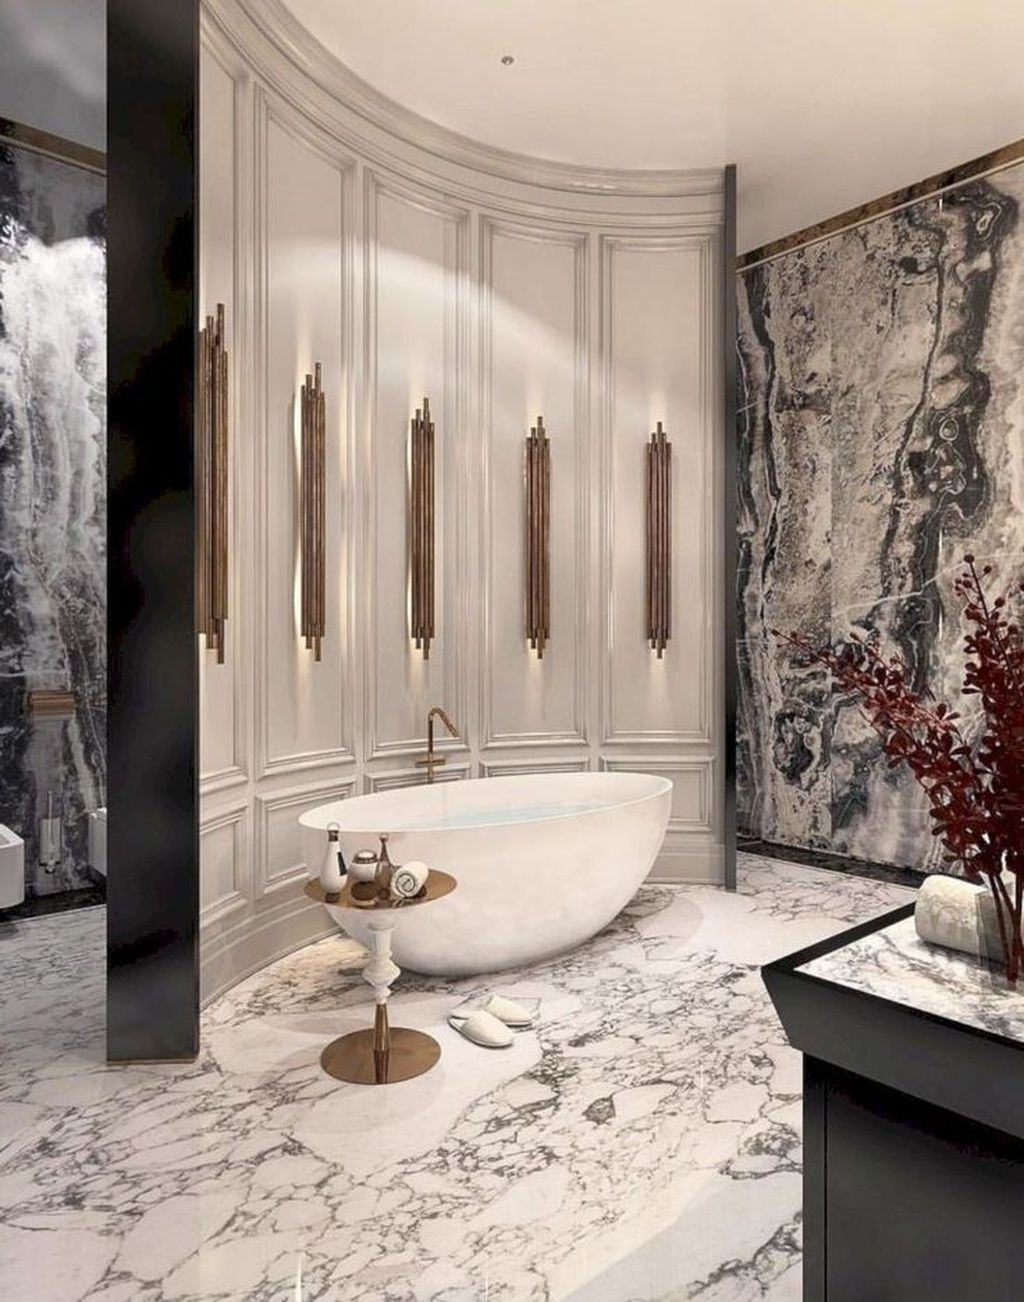 Luxury Bathroom Design And Decor Ideas 16